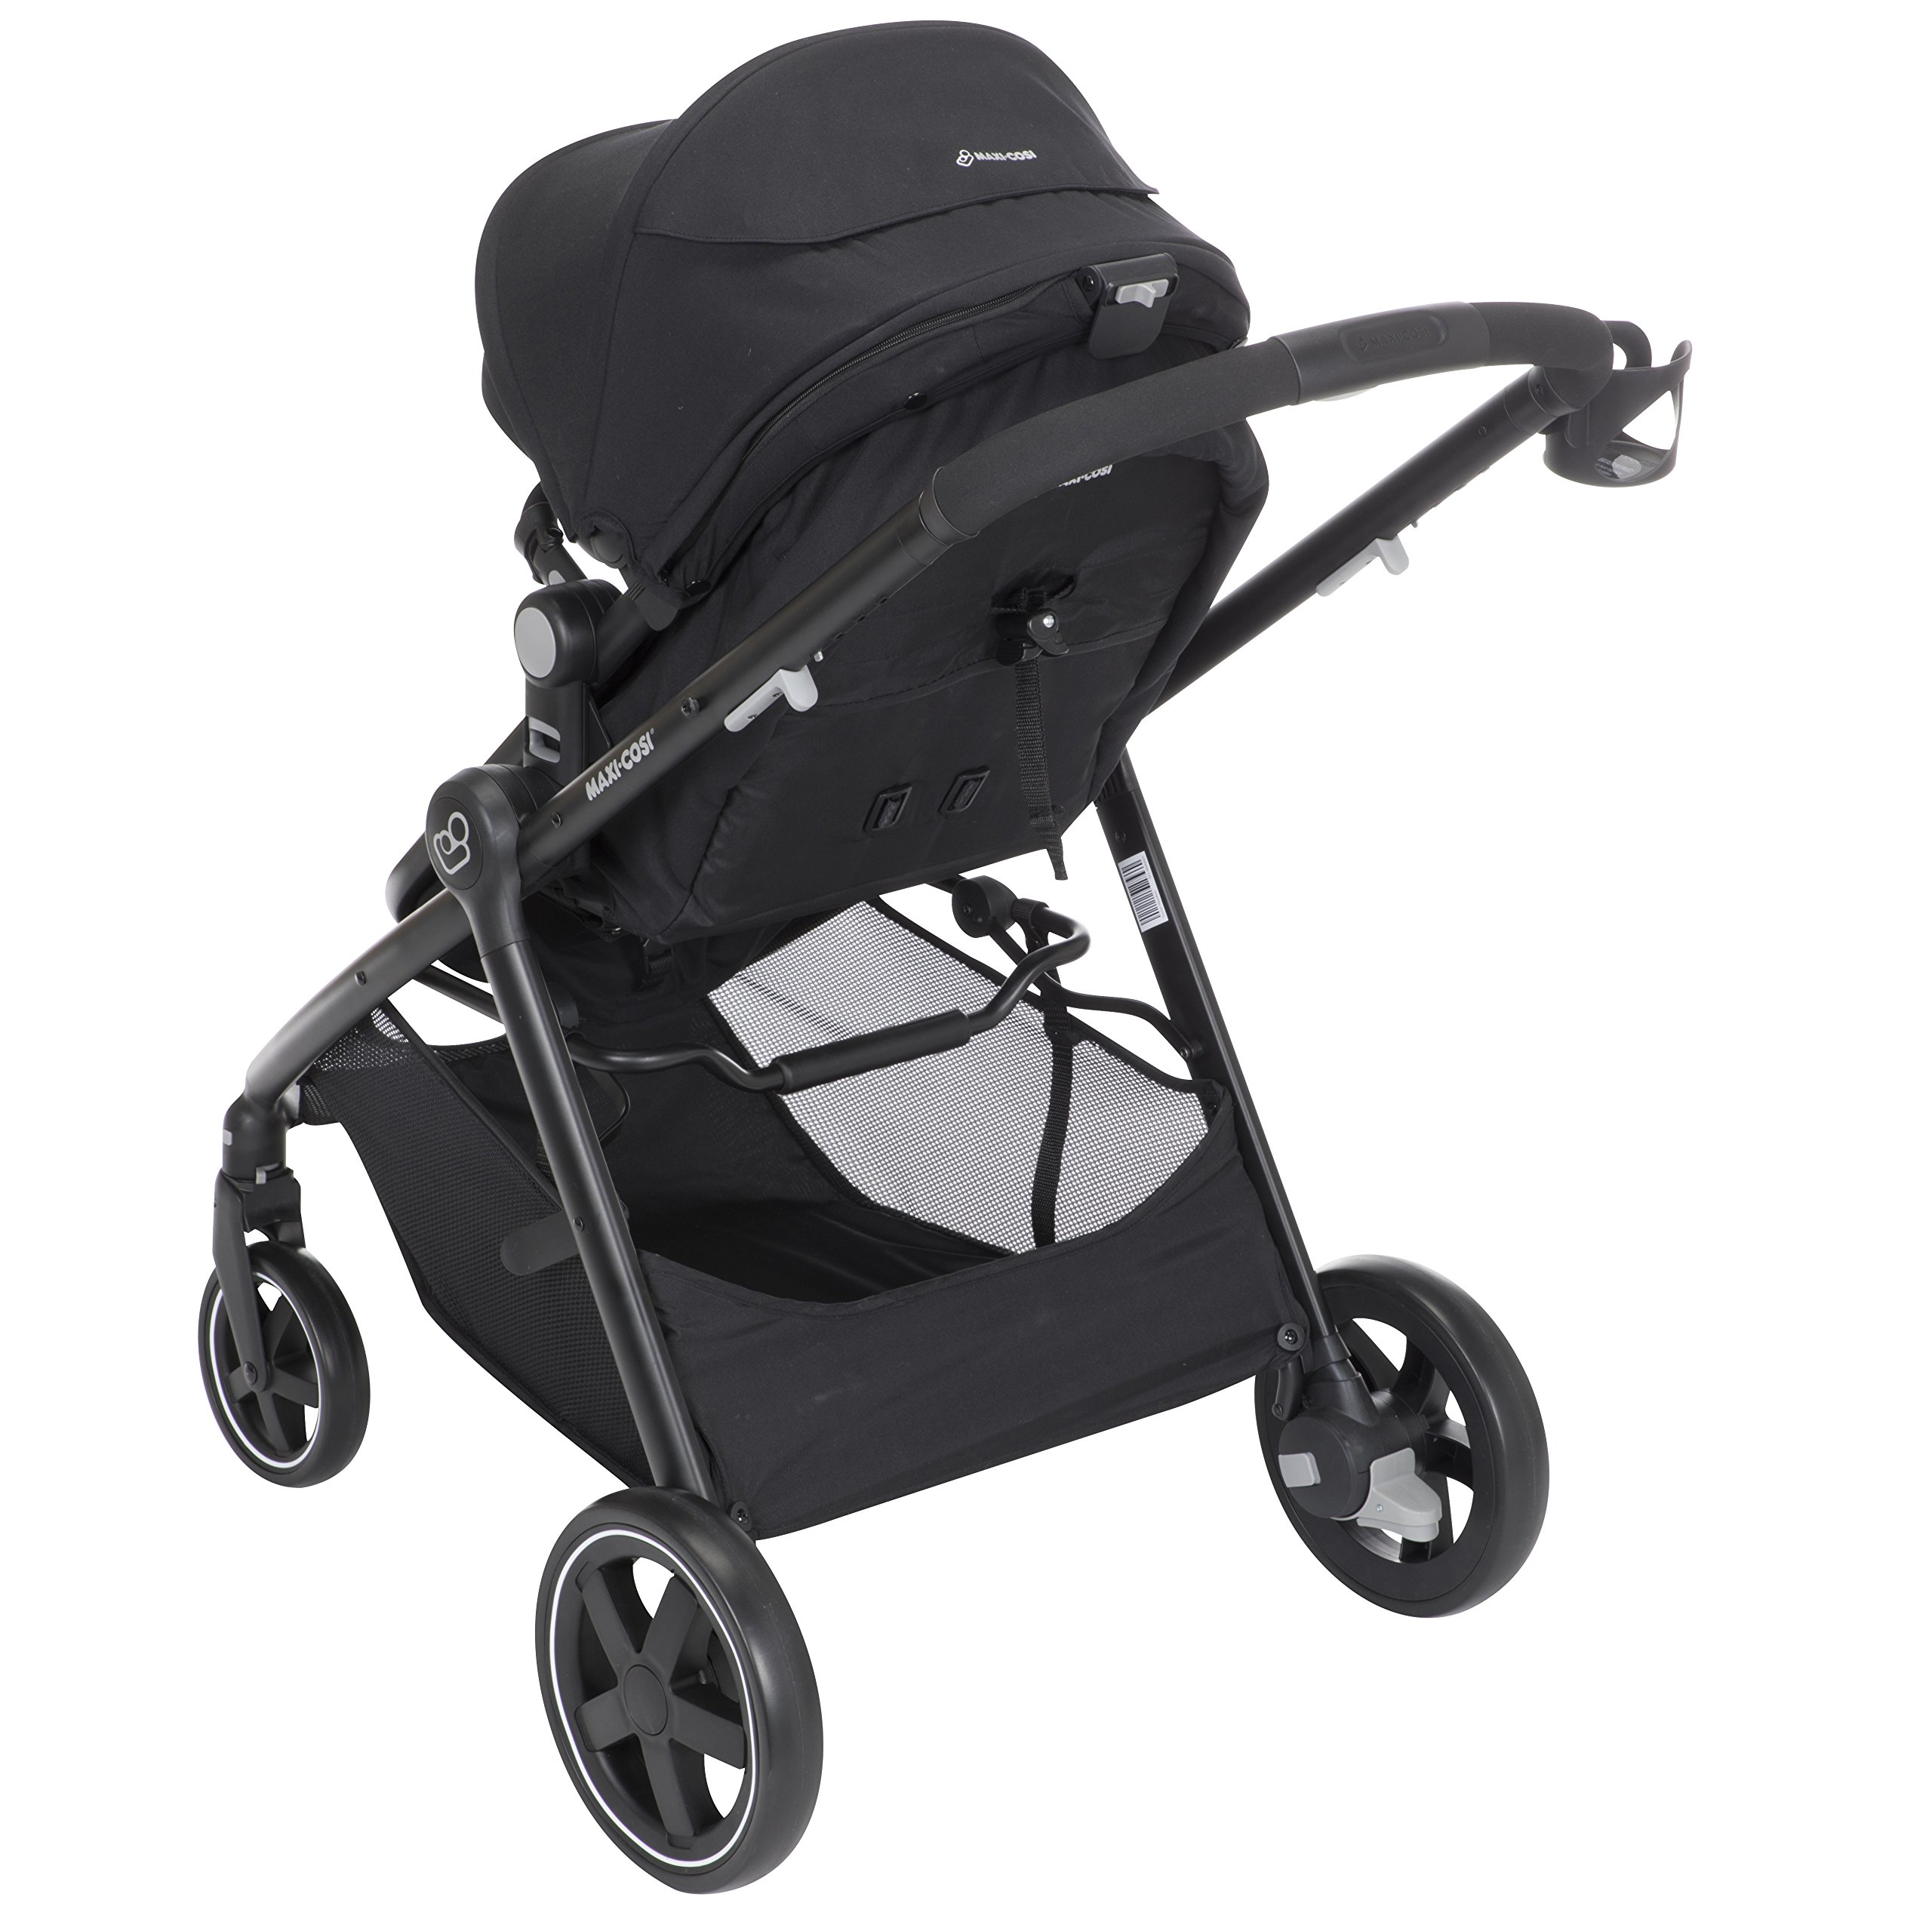 Maxi-Cosi Zelia 5-in-1 Modular Travel System Stroller and Mico 30 Infant Car Seat Set (Night Black) by Maxi-Cosi (Image #11)